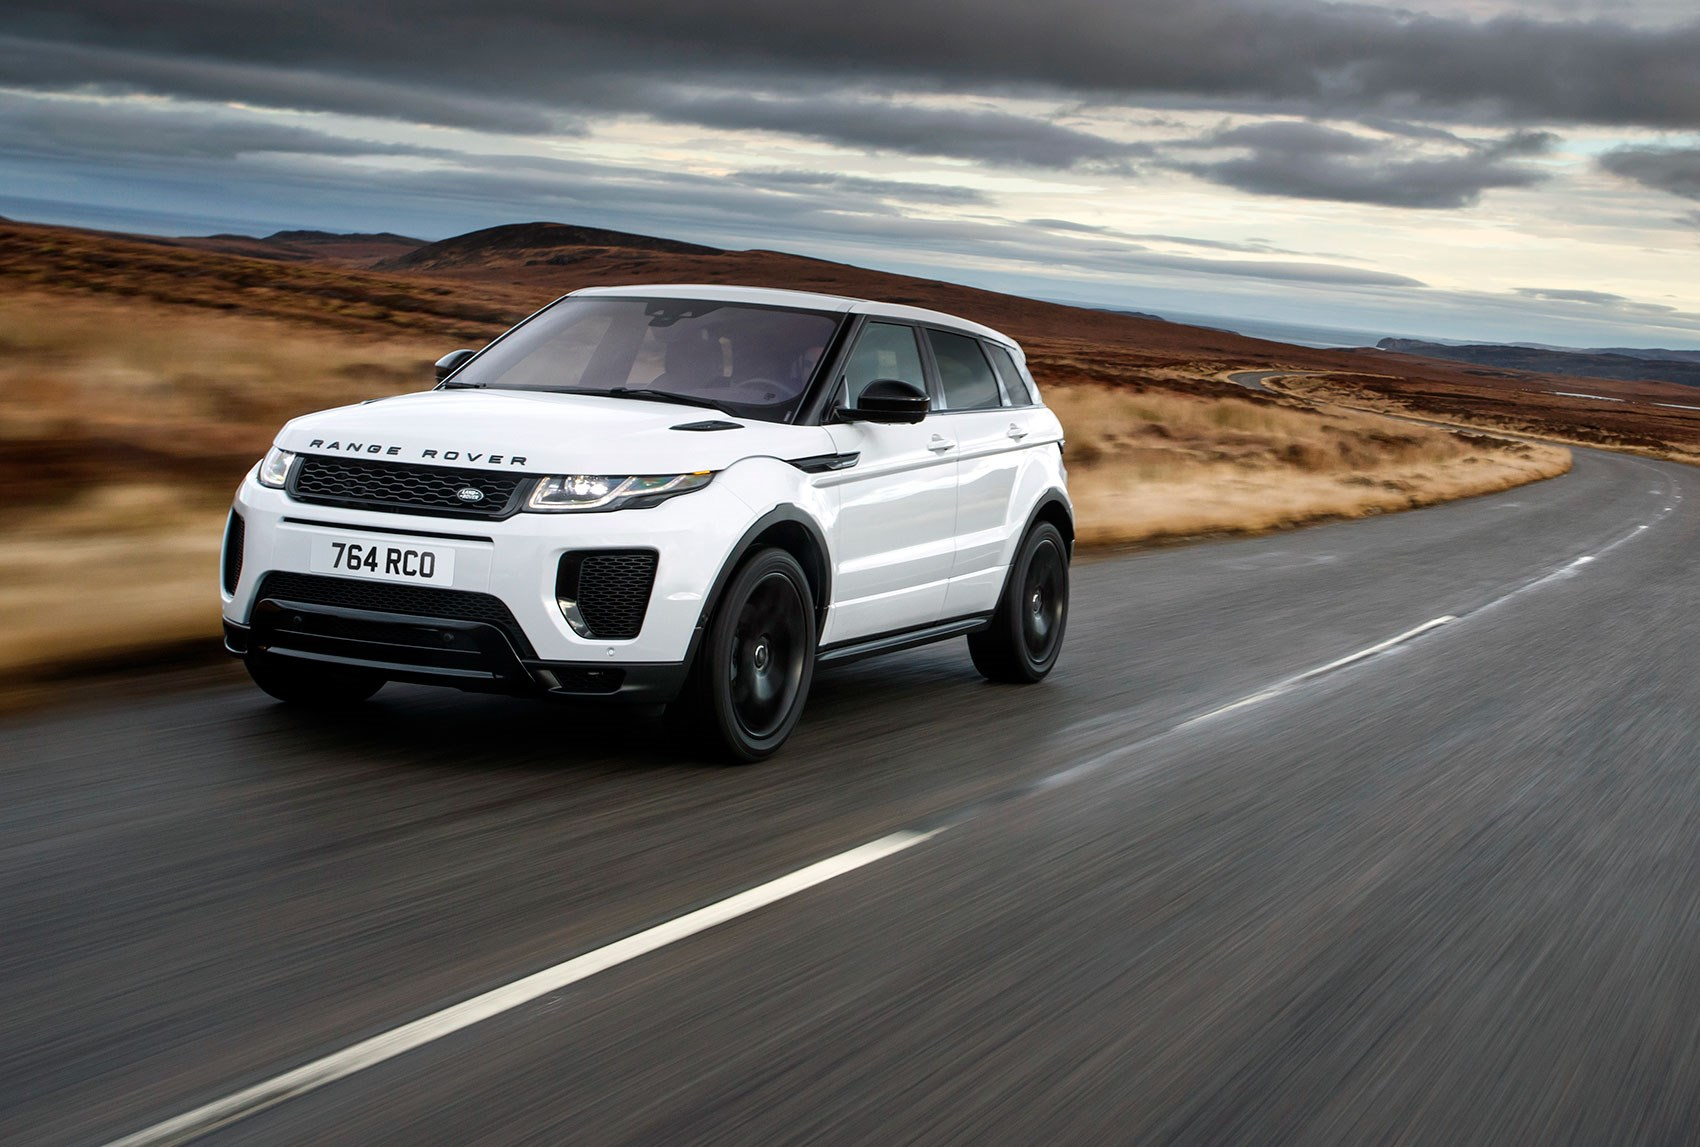 land rover has created suv containing fully functioning 2